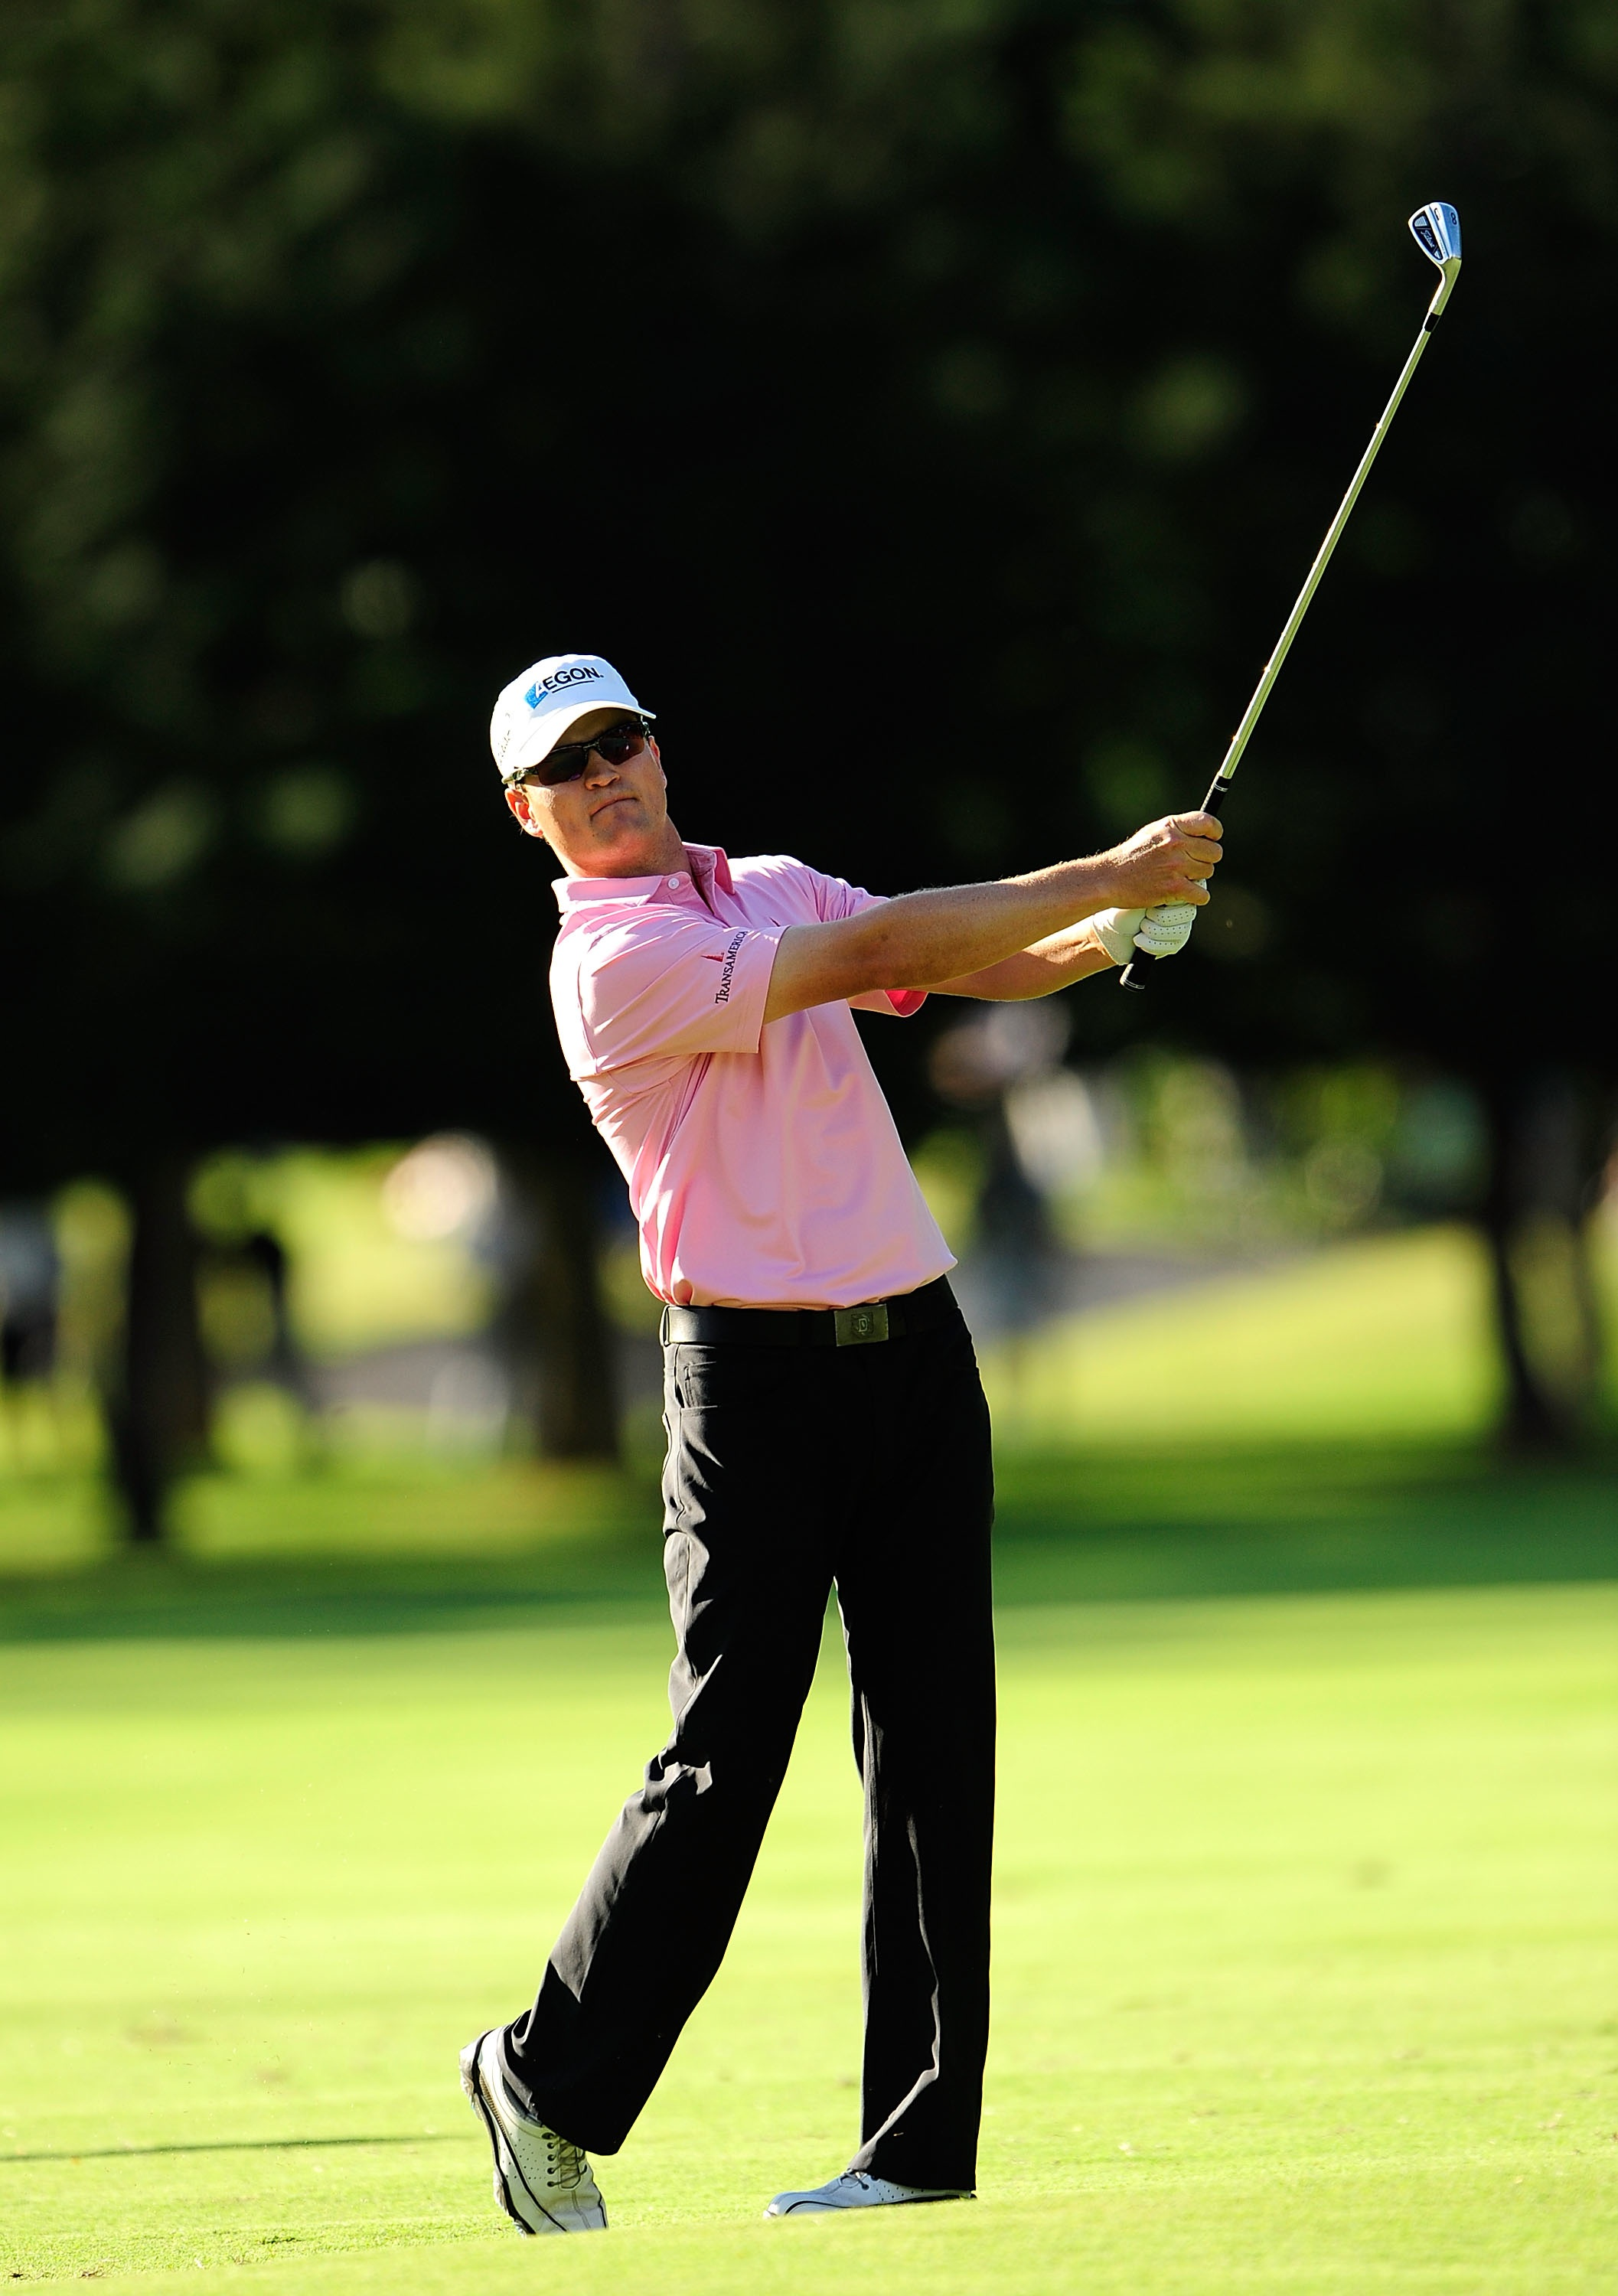 Zach Johnson in a pink Dunning polo during round three of the Sony Open.